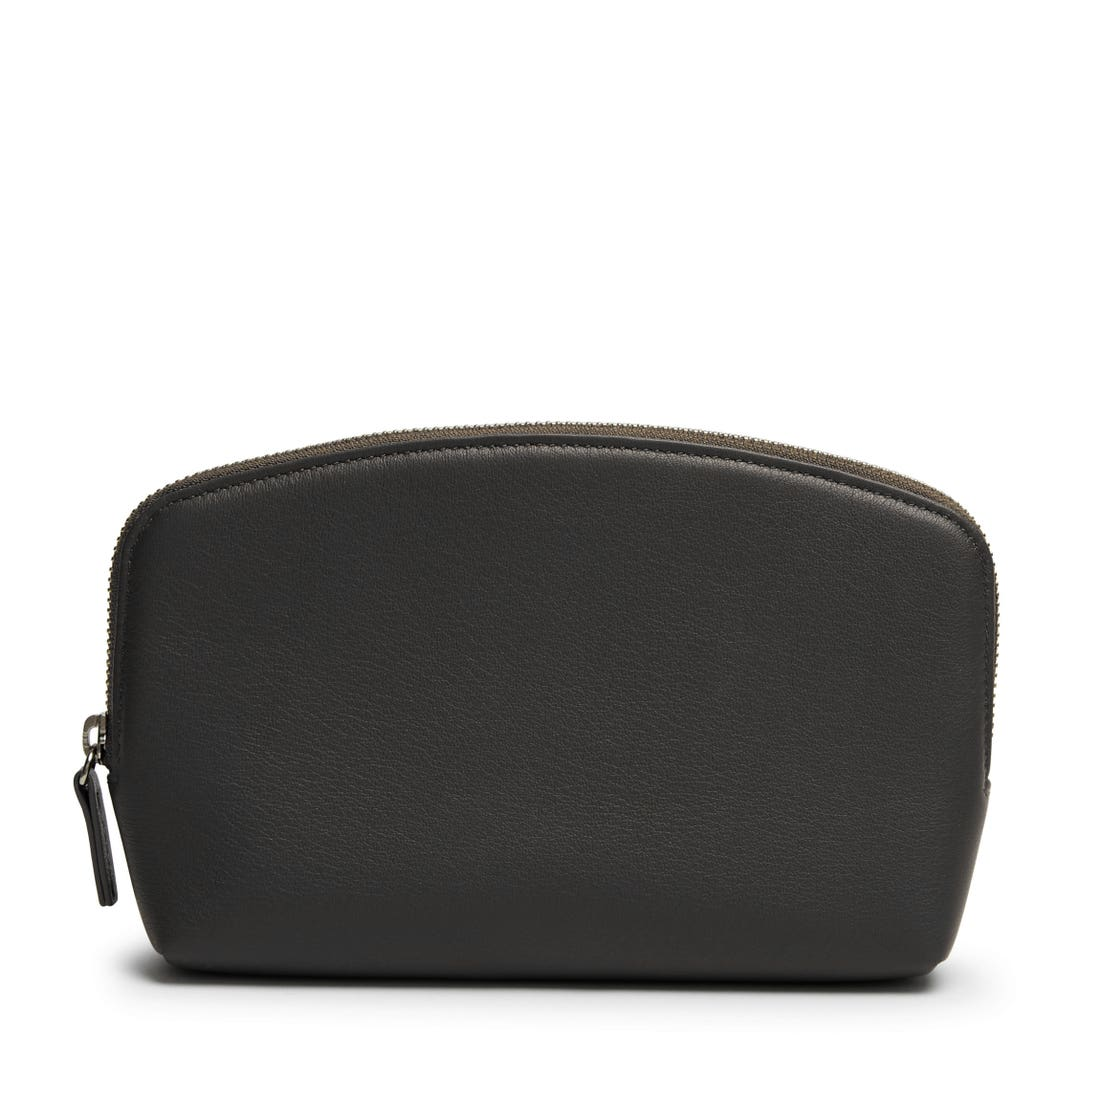 Medium Makeup Pouch